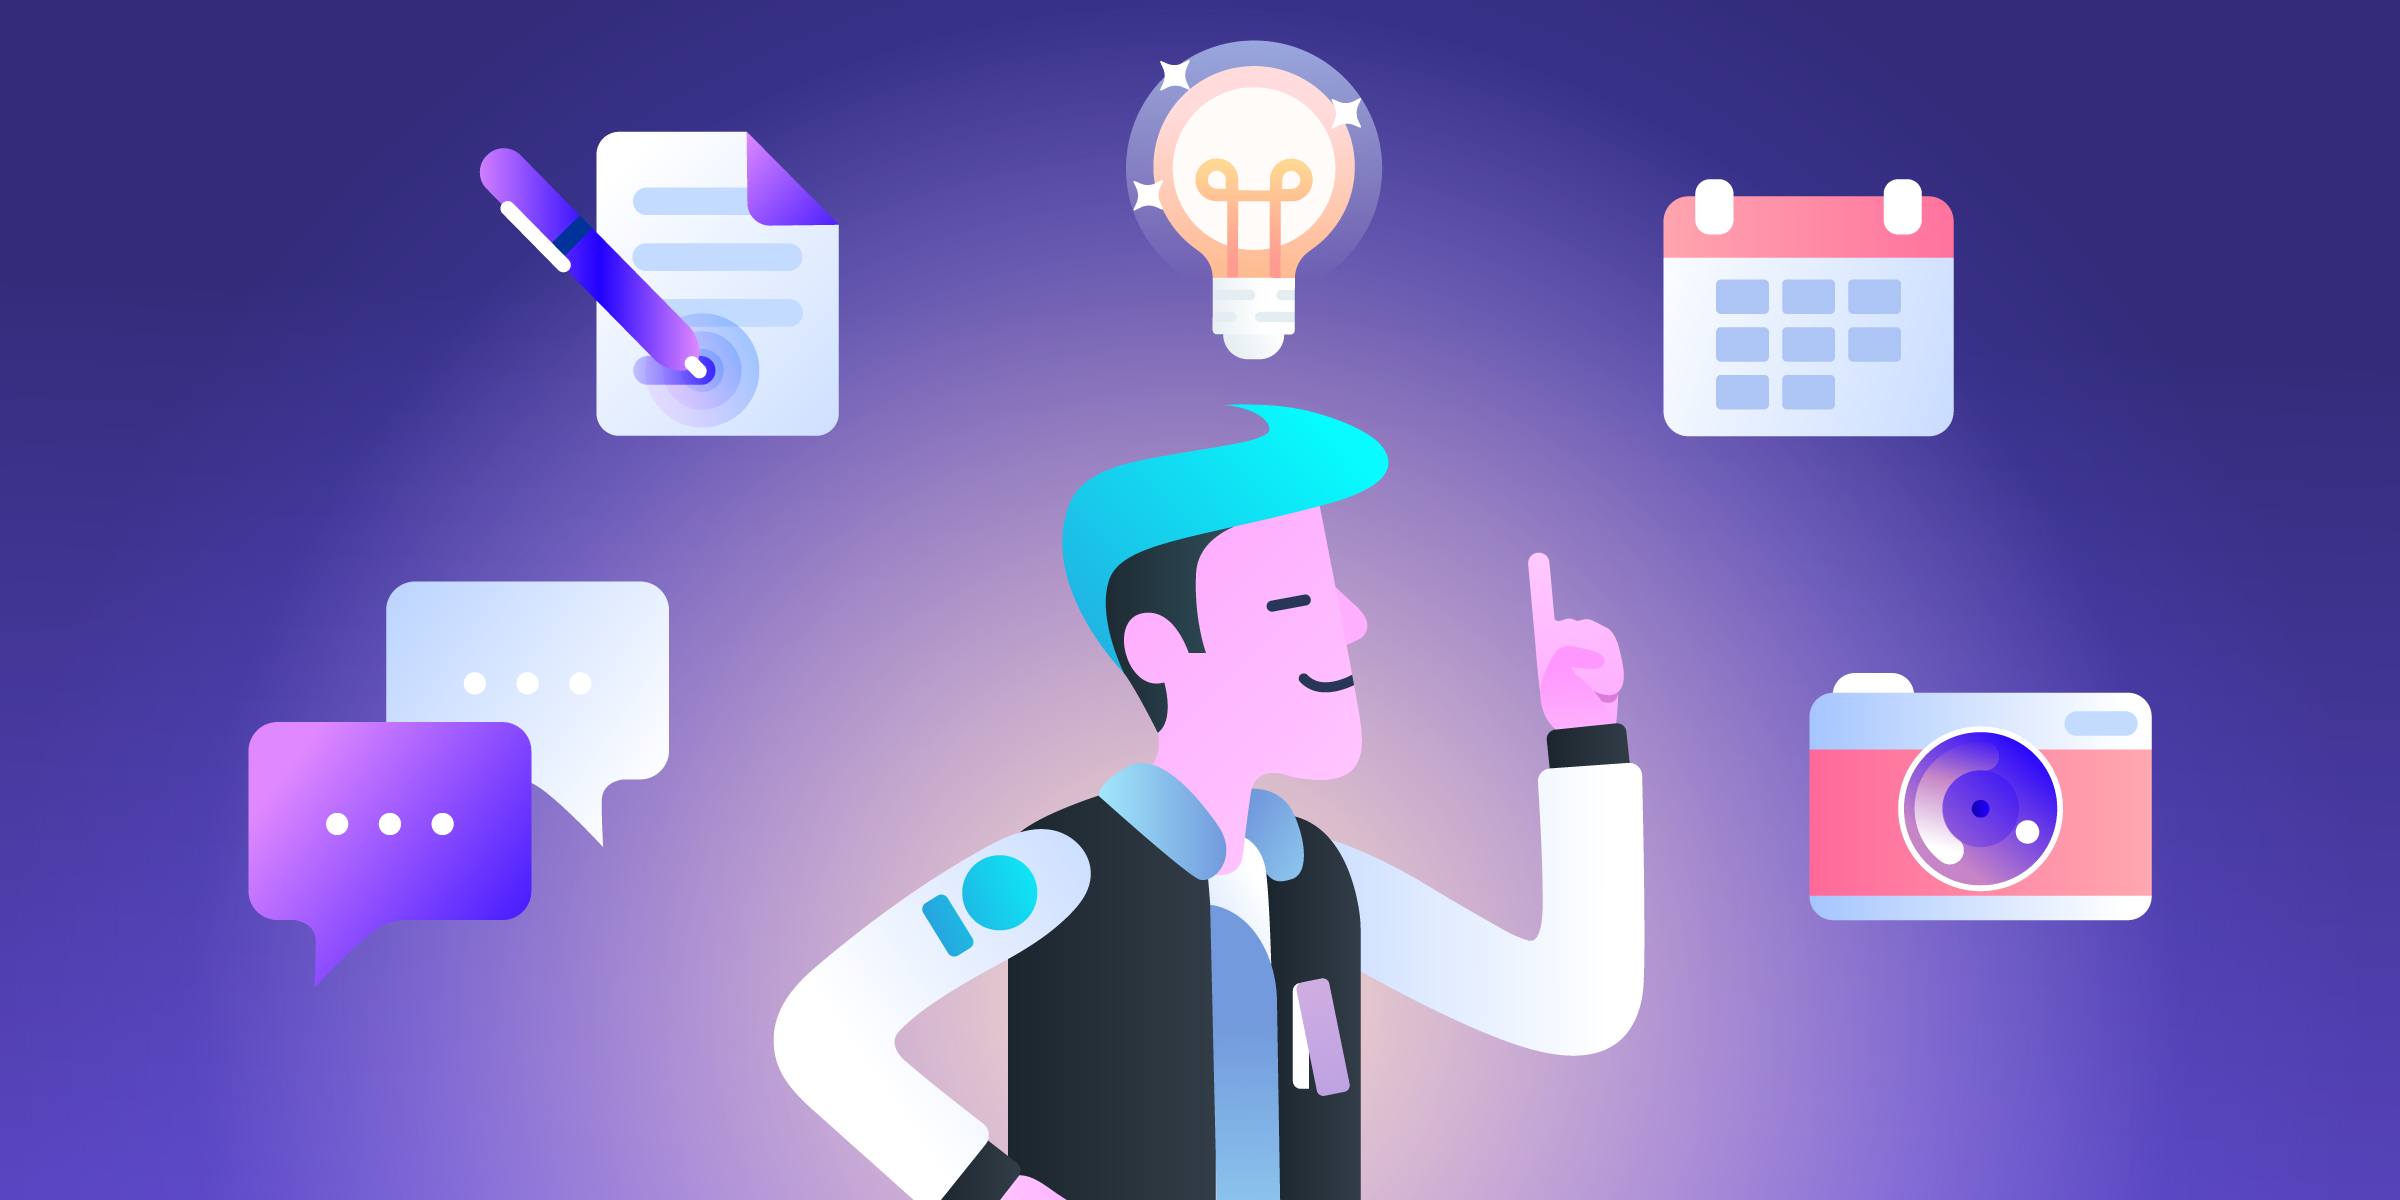 Self-Management: How To Prioritize And Be More Productive